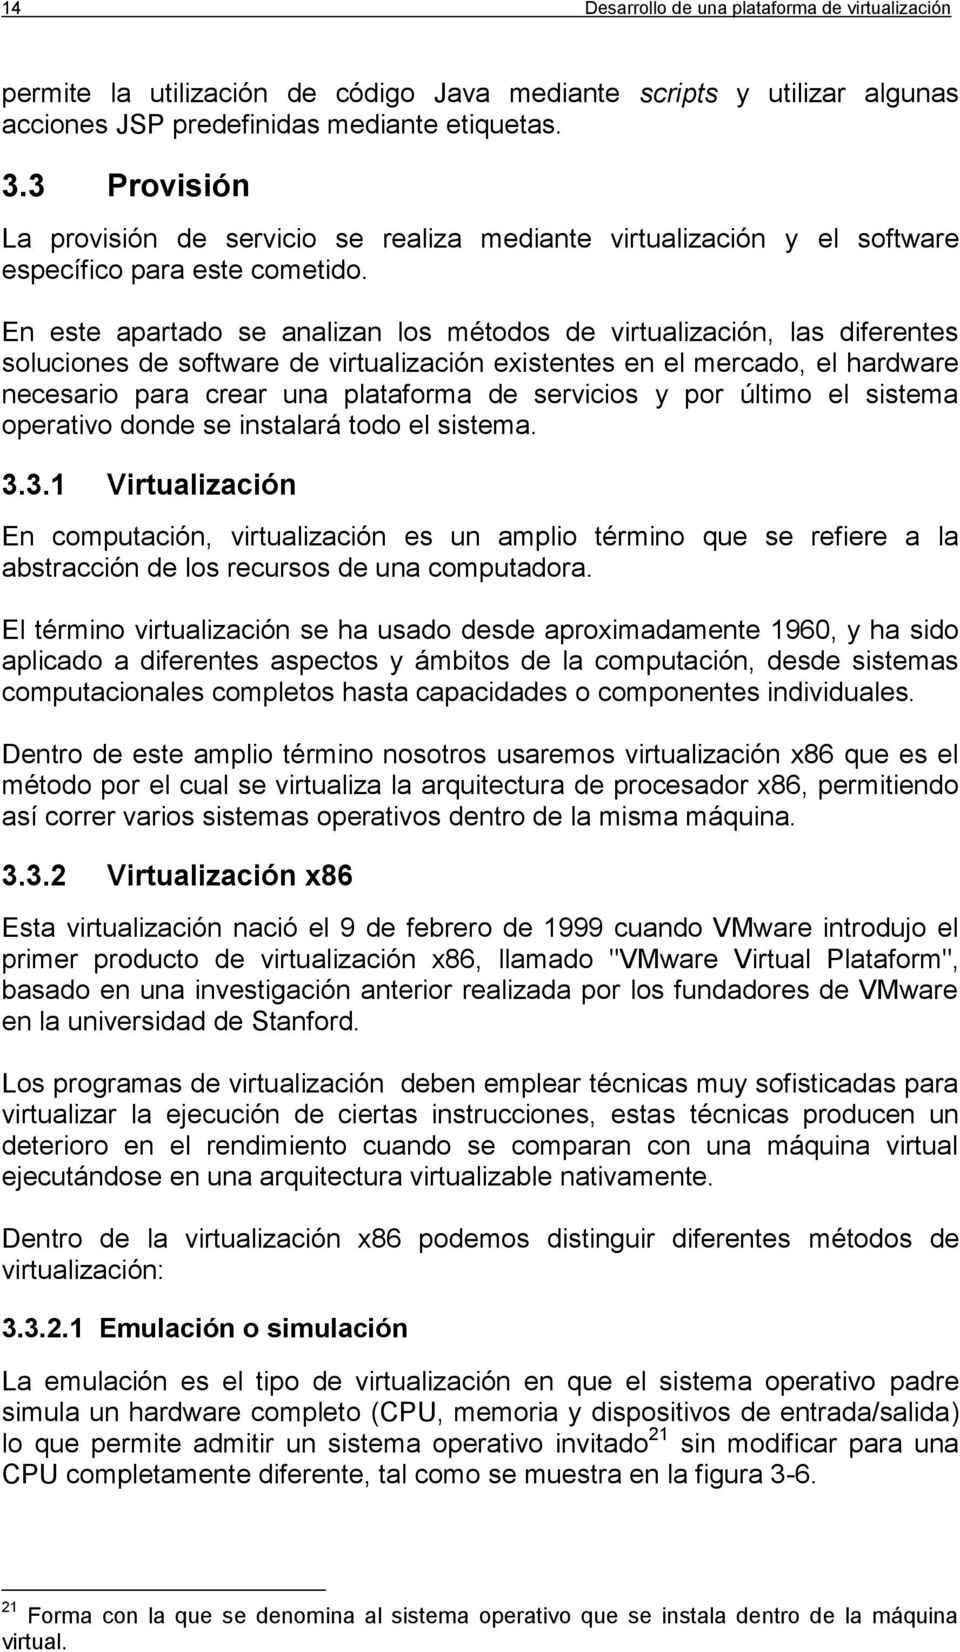 Trabajo final de carrera pdf for Arquitectura x86 pdf